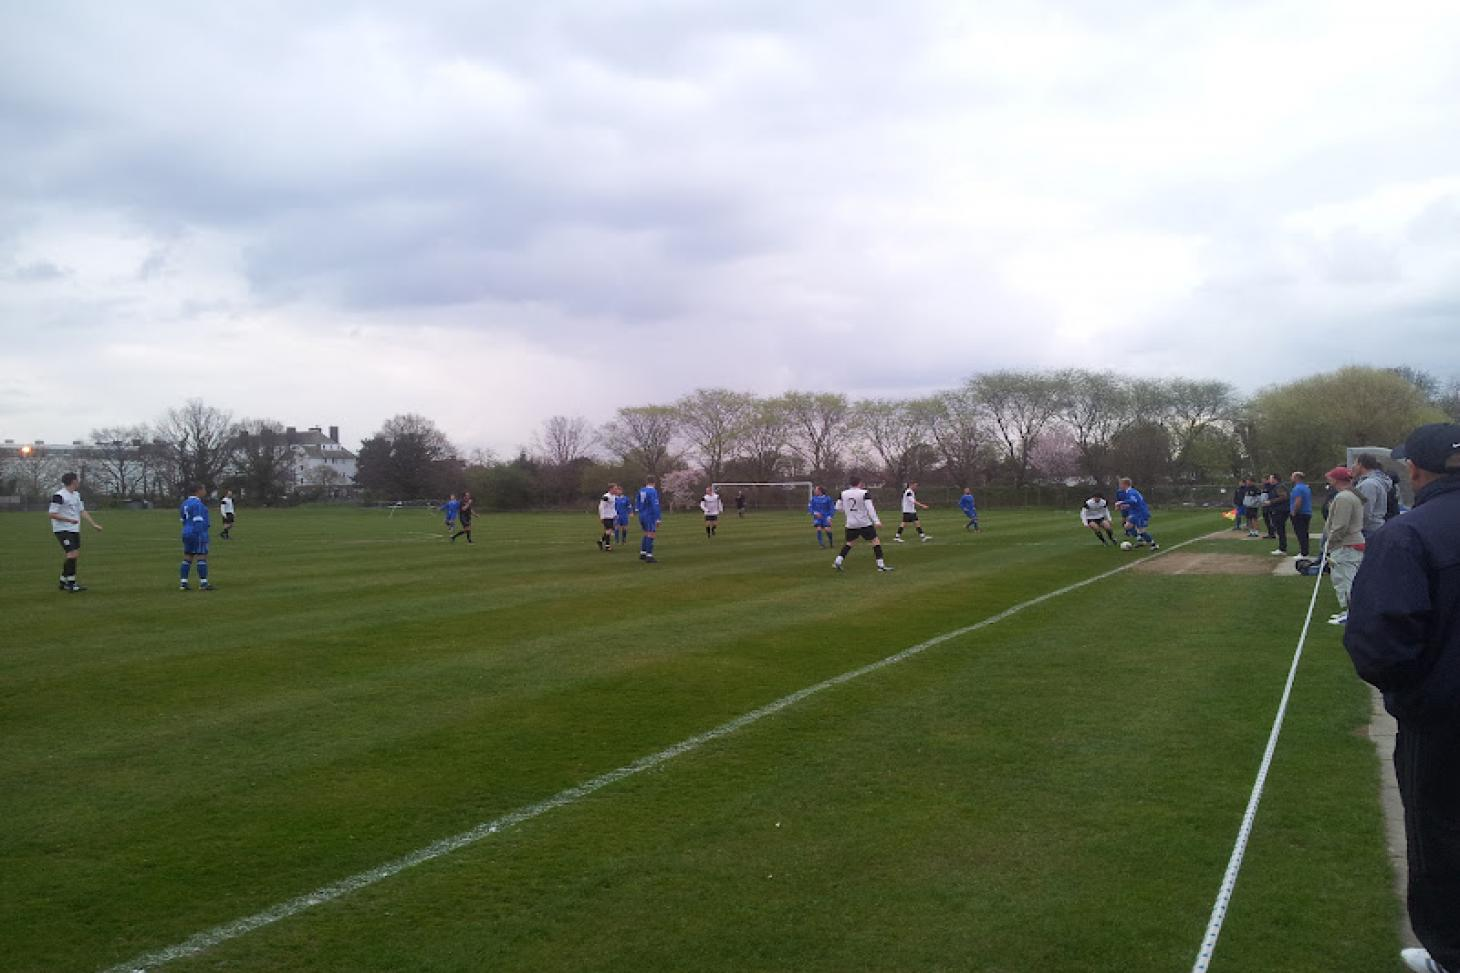 London Marathon Playing Fields - Redbridge 11 a side | Grass football pitch